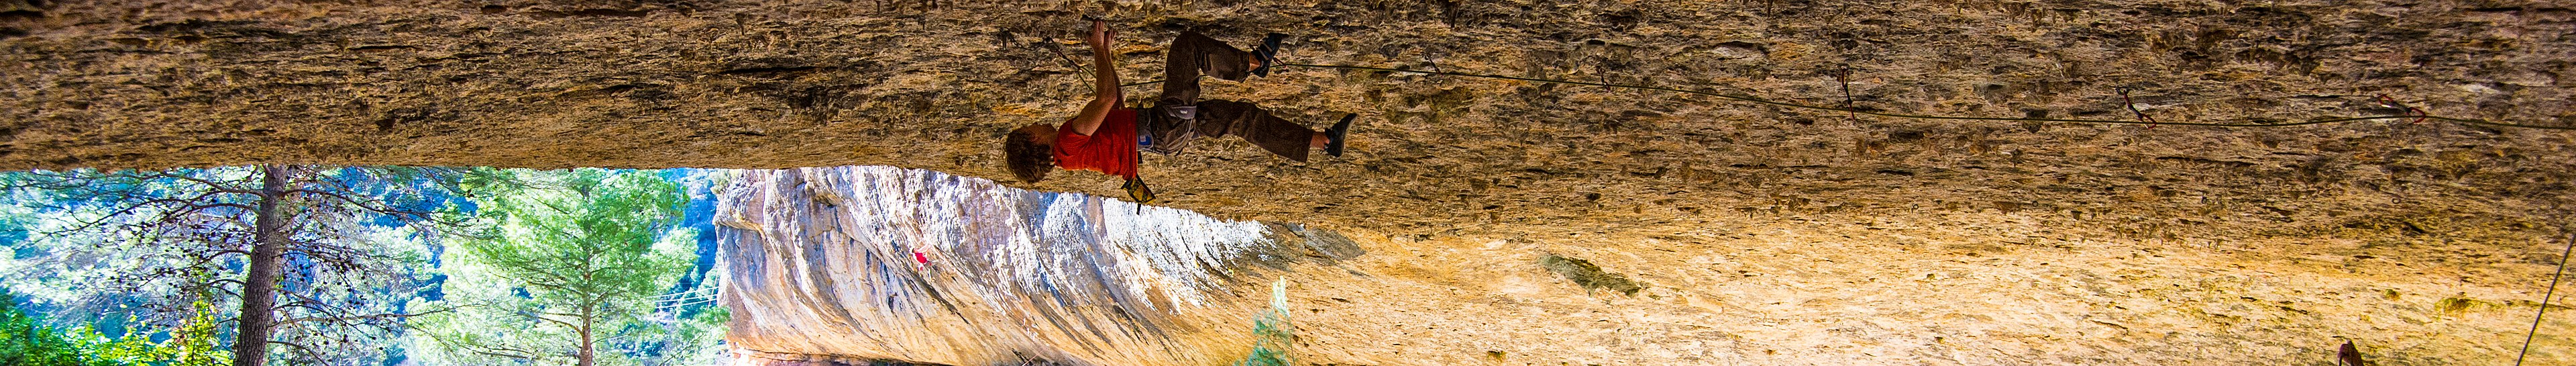 Roof climbing lead route in Catalonia 2016